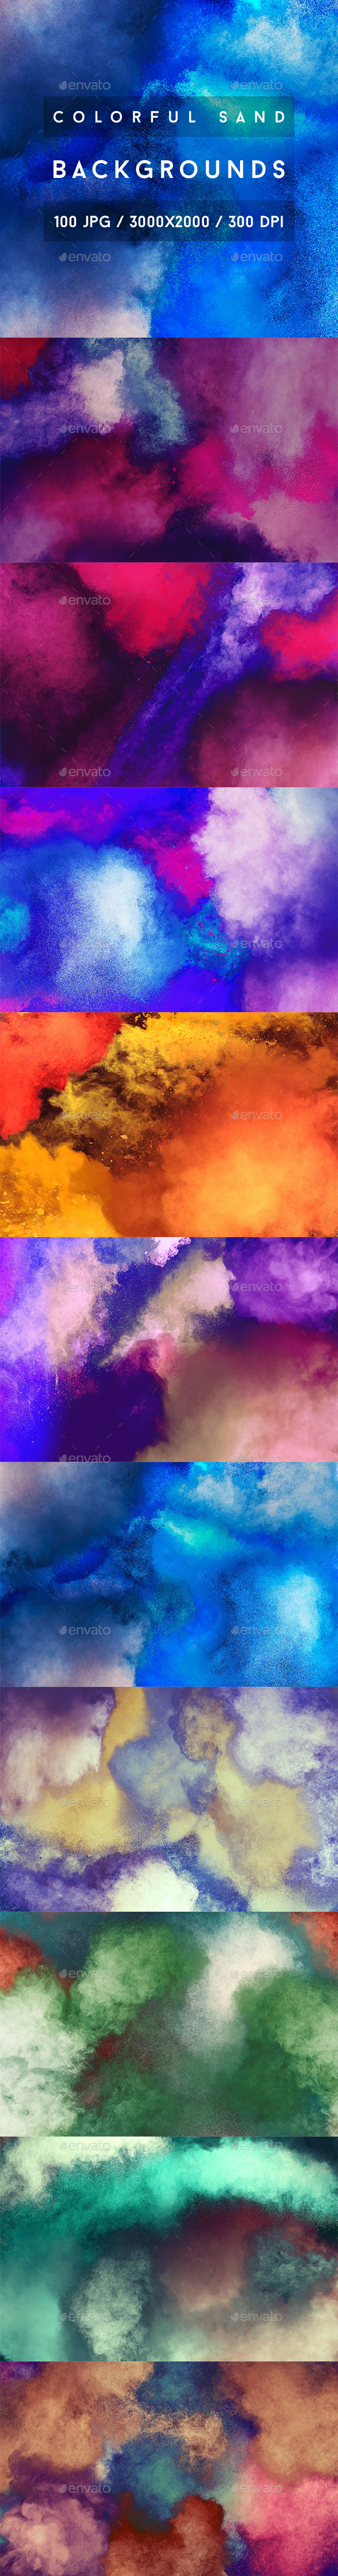 100 Colorful Sand Backgrounds - Abstract Backgrounds